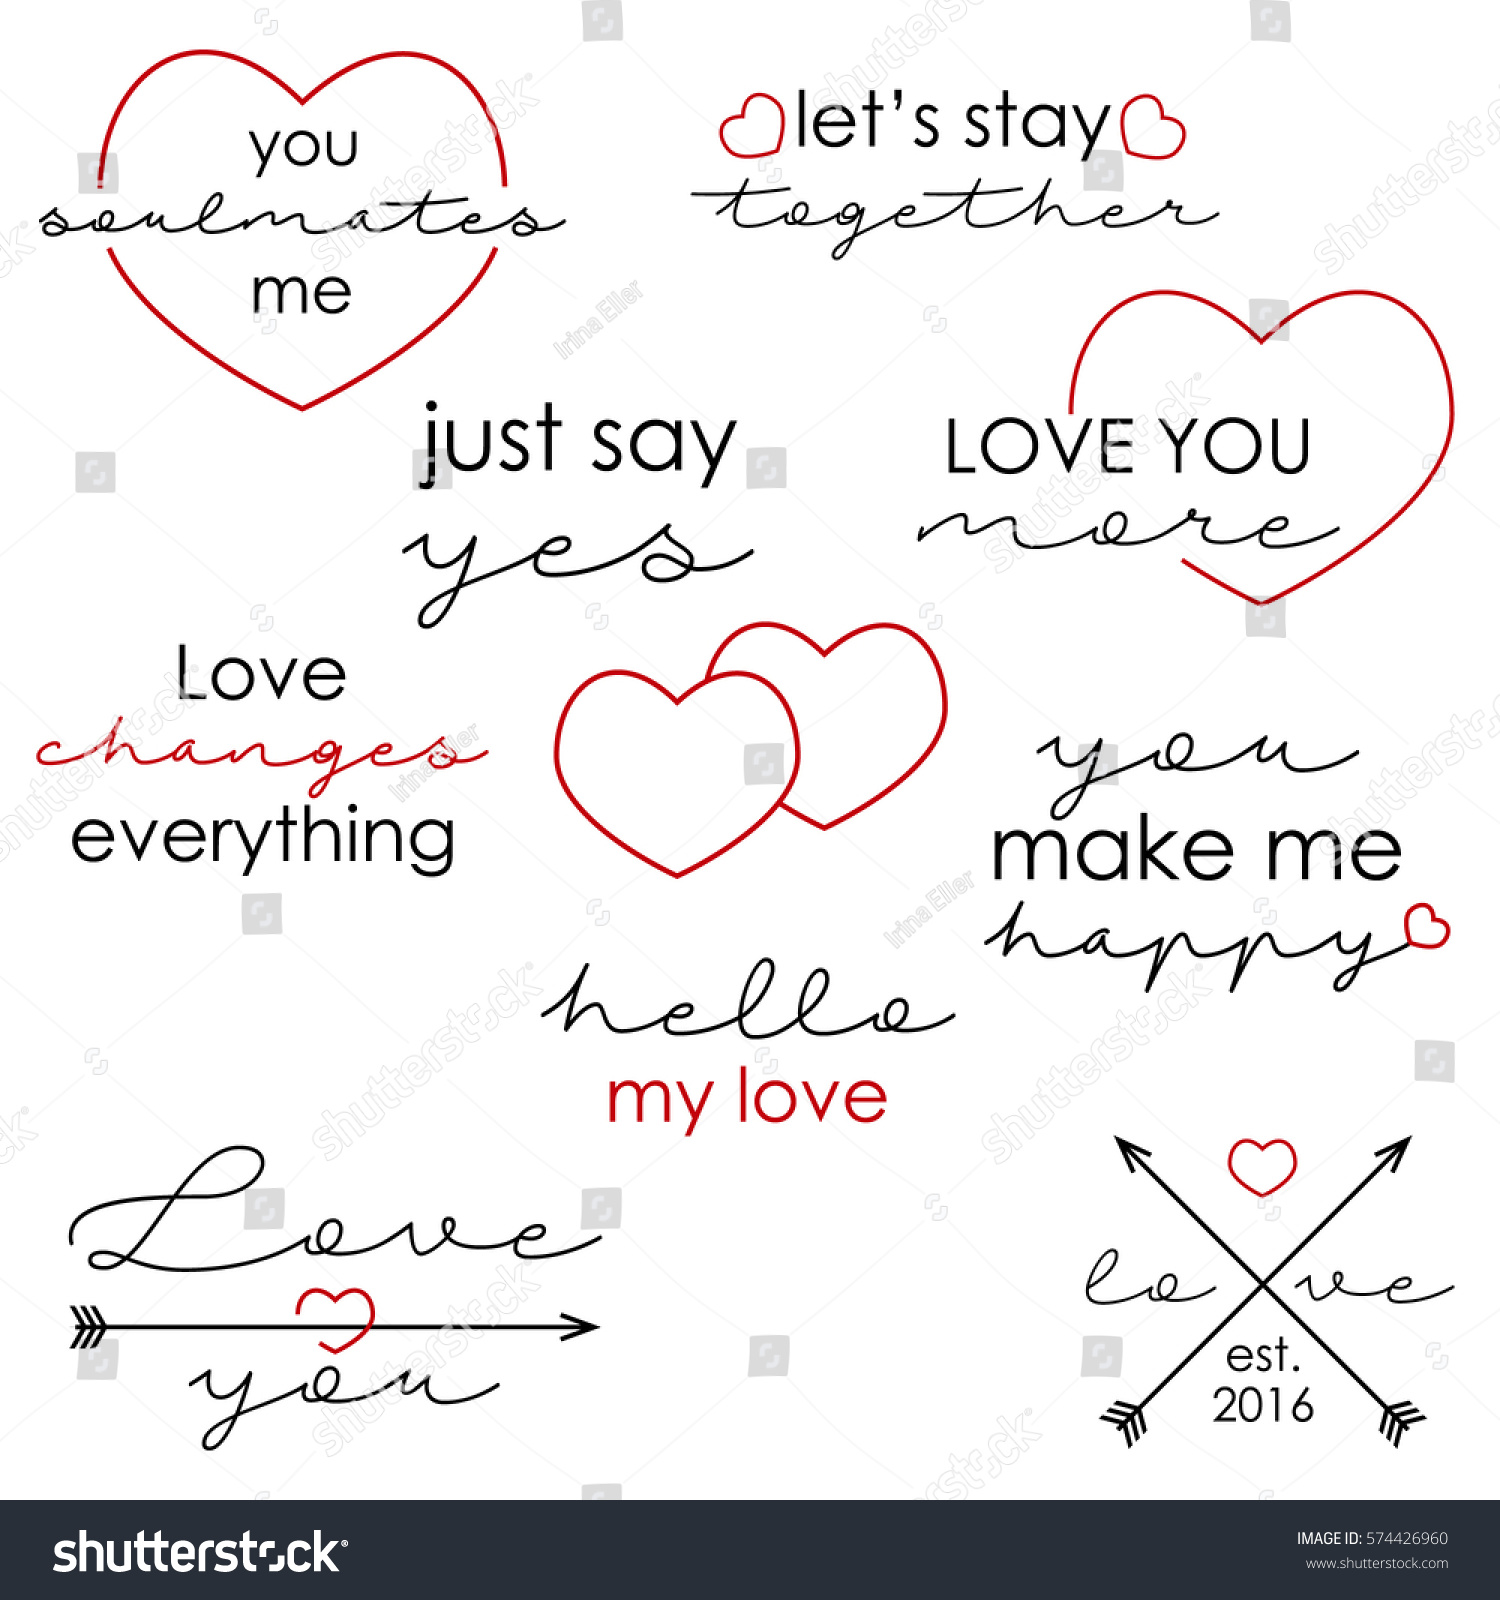 Love Quotes For Valentines Day Set Love Quotes Valentines Day Vector Stock Vector 574426960